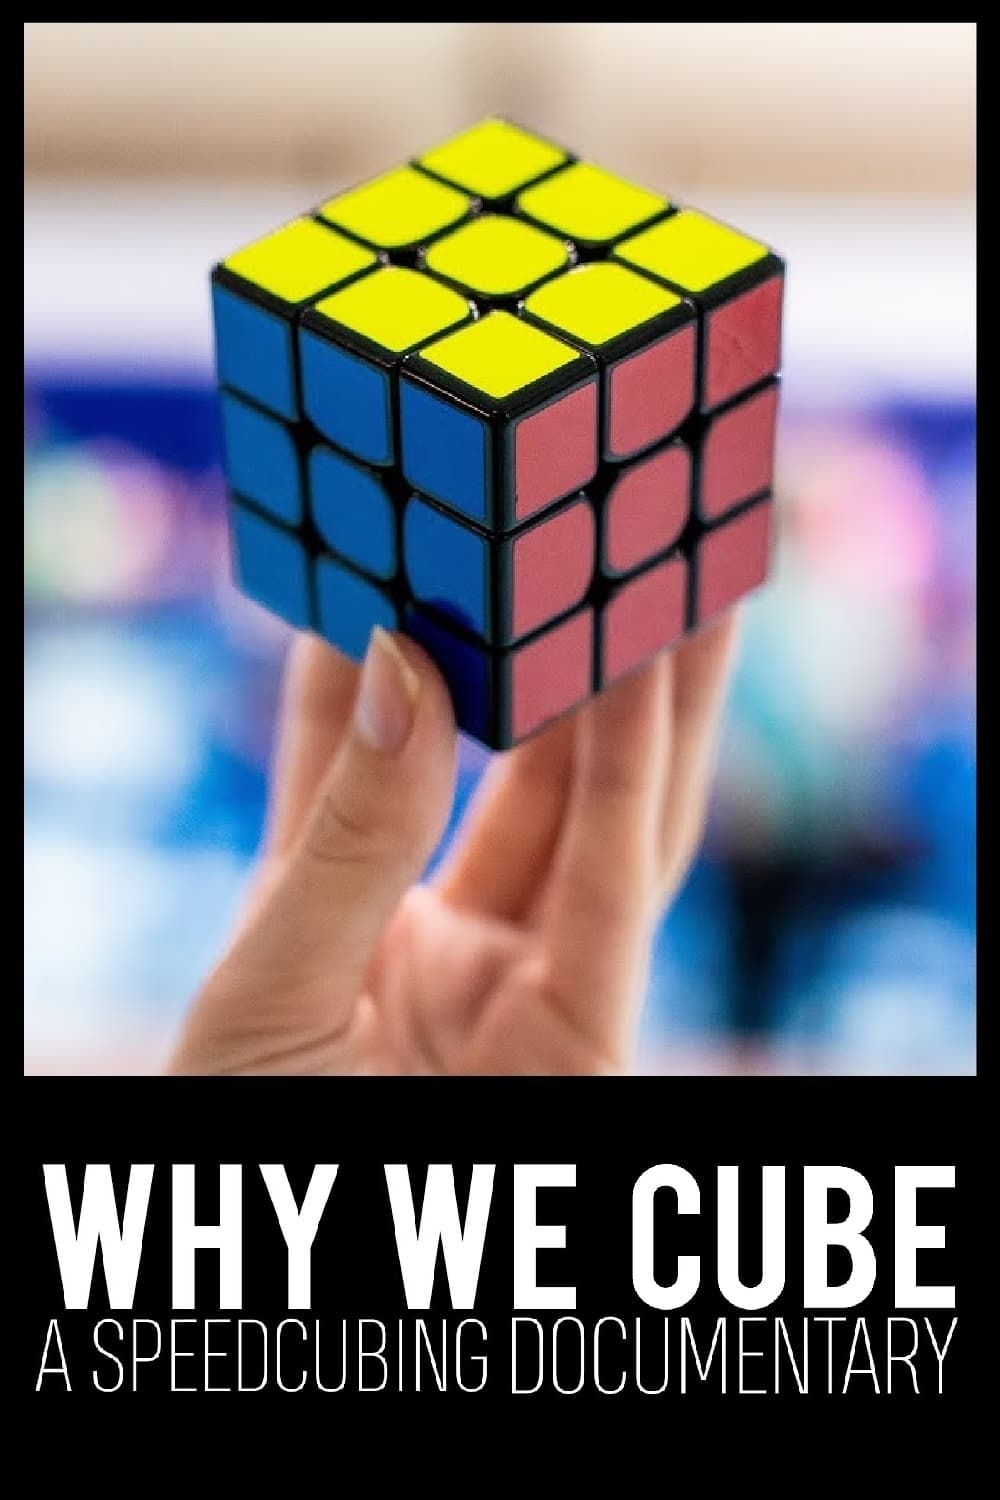 Why We Cube (2018)